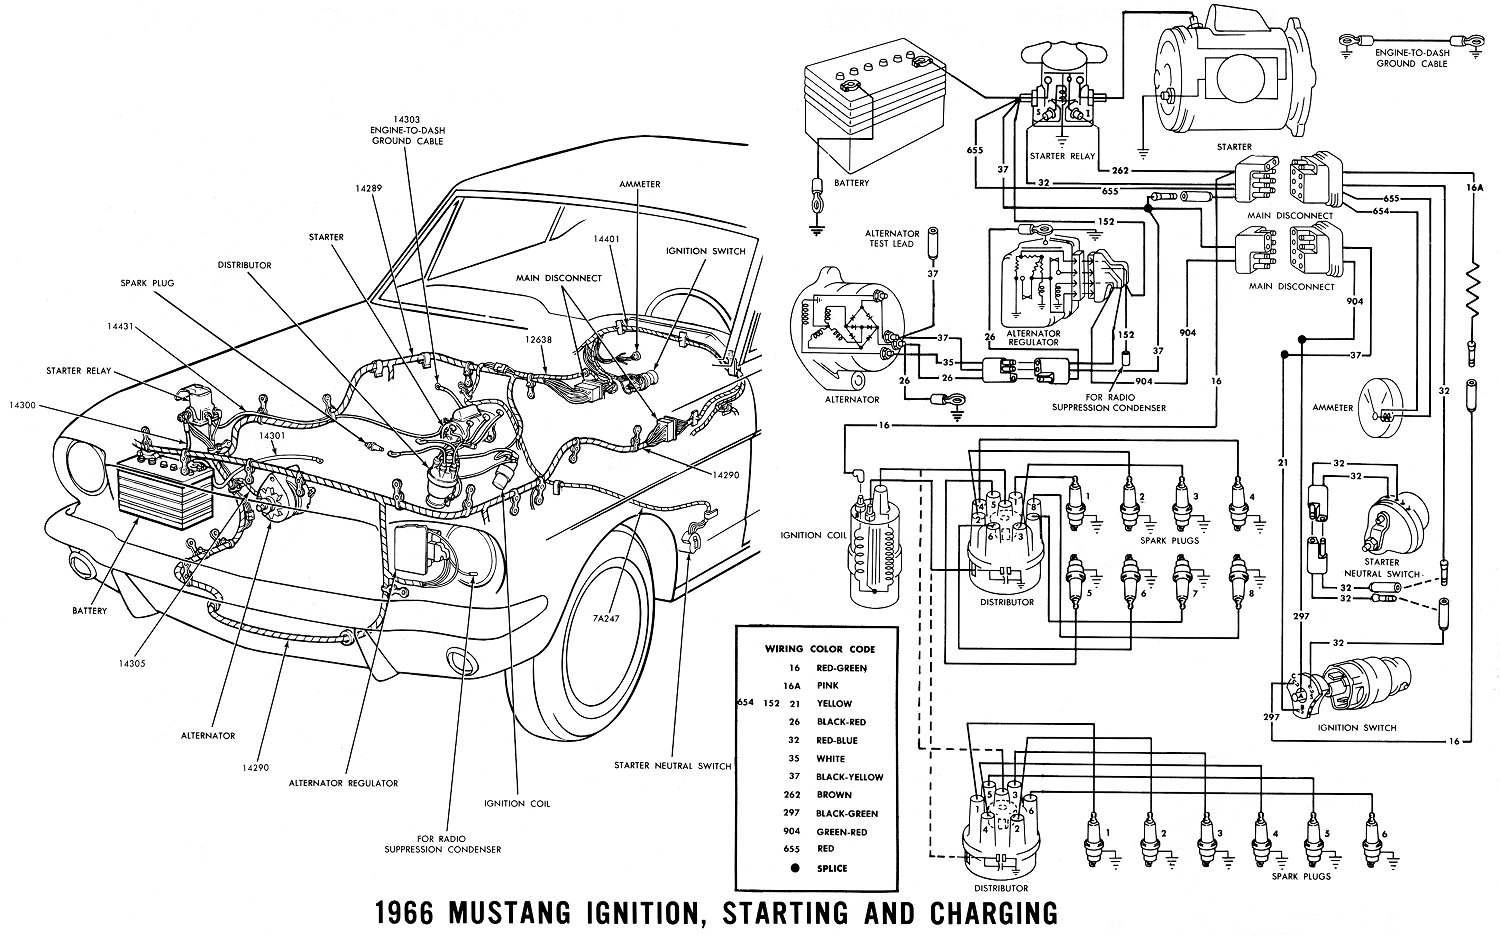 1966 Mustang Wiring Diagrams Average Joe Restoration Johnson Harness Diagram Free Picture Schematic Ignition Starting And Charging